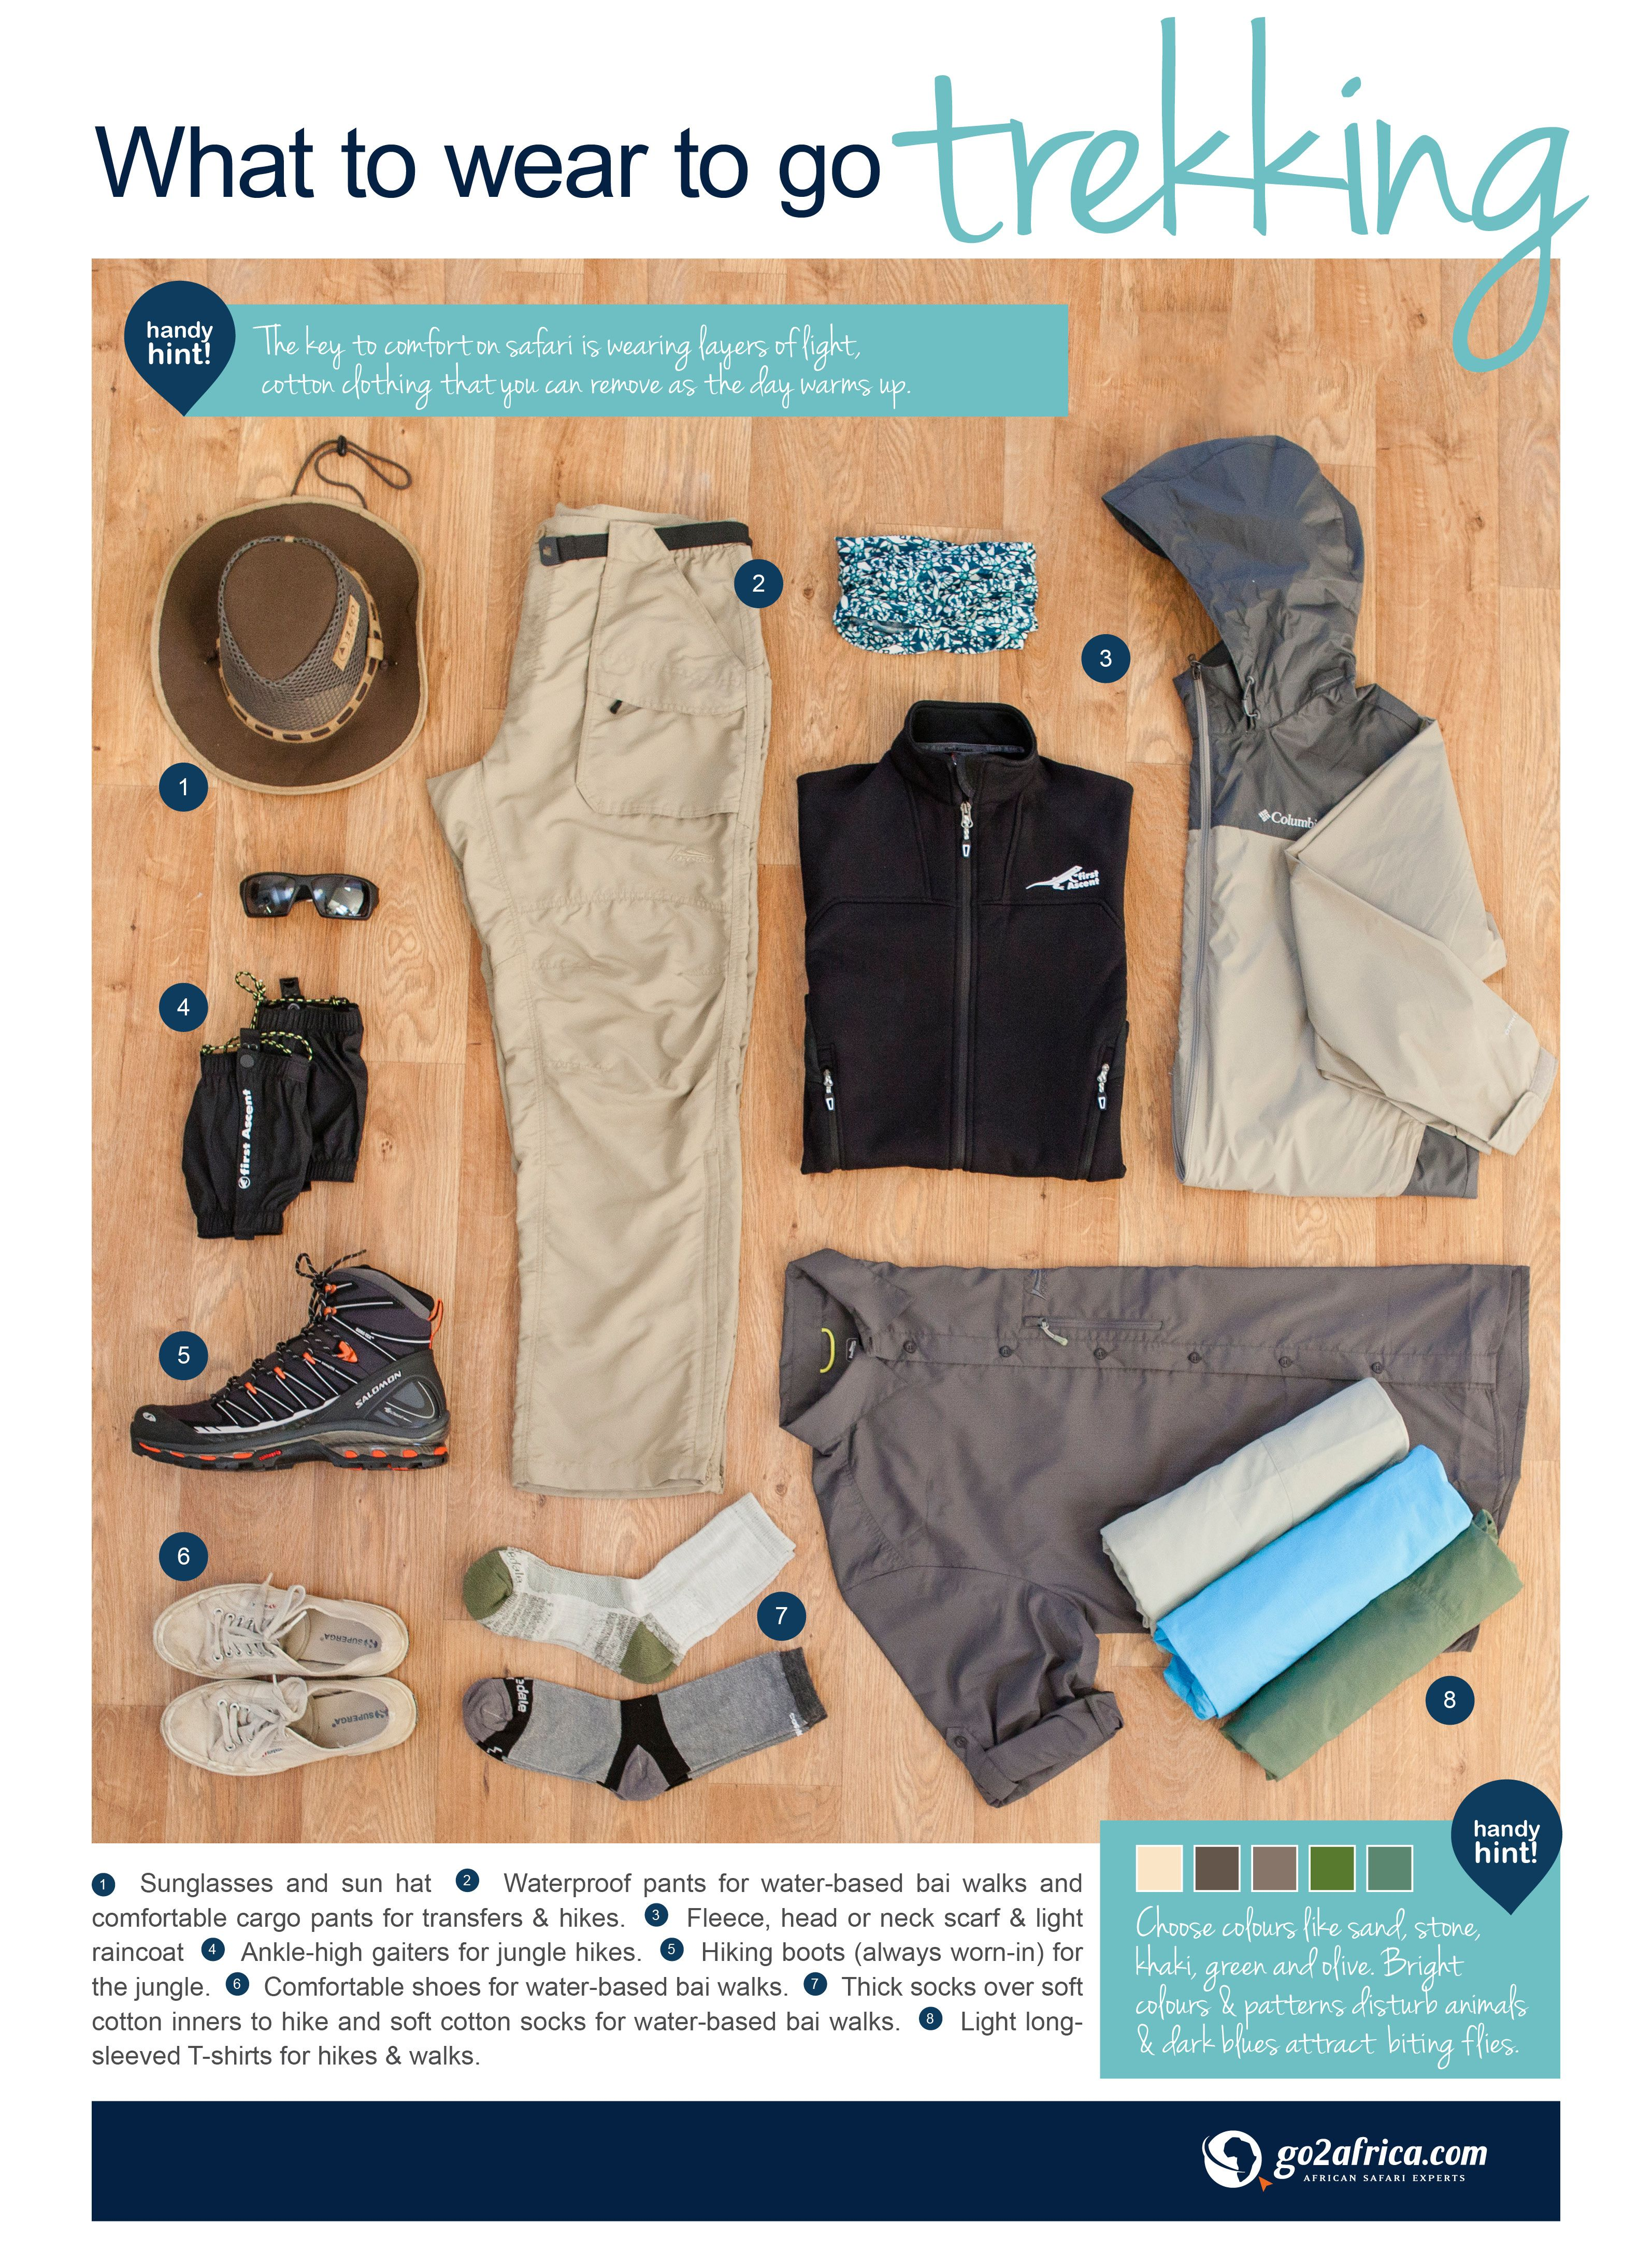 What to wear to go Trekking to the Congo  #Africa #Congo